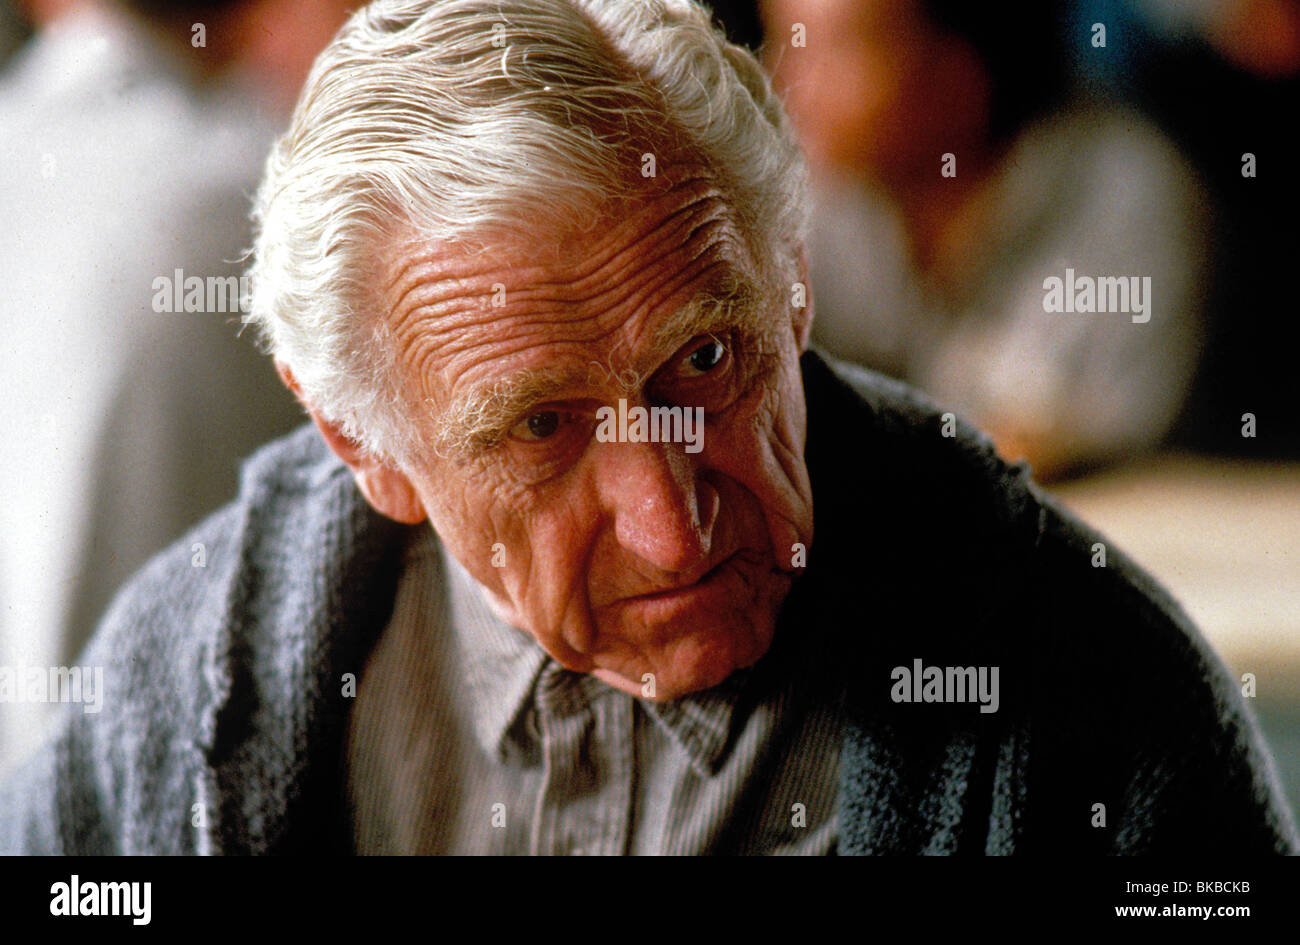 THE SHAWSHANK REDEMPTION (1994) JAMES WHITMORE SHWK 026 - Stock Image